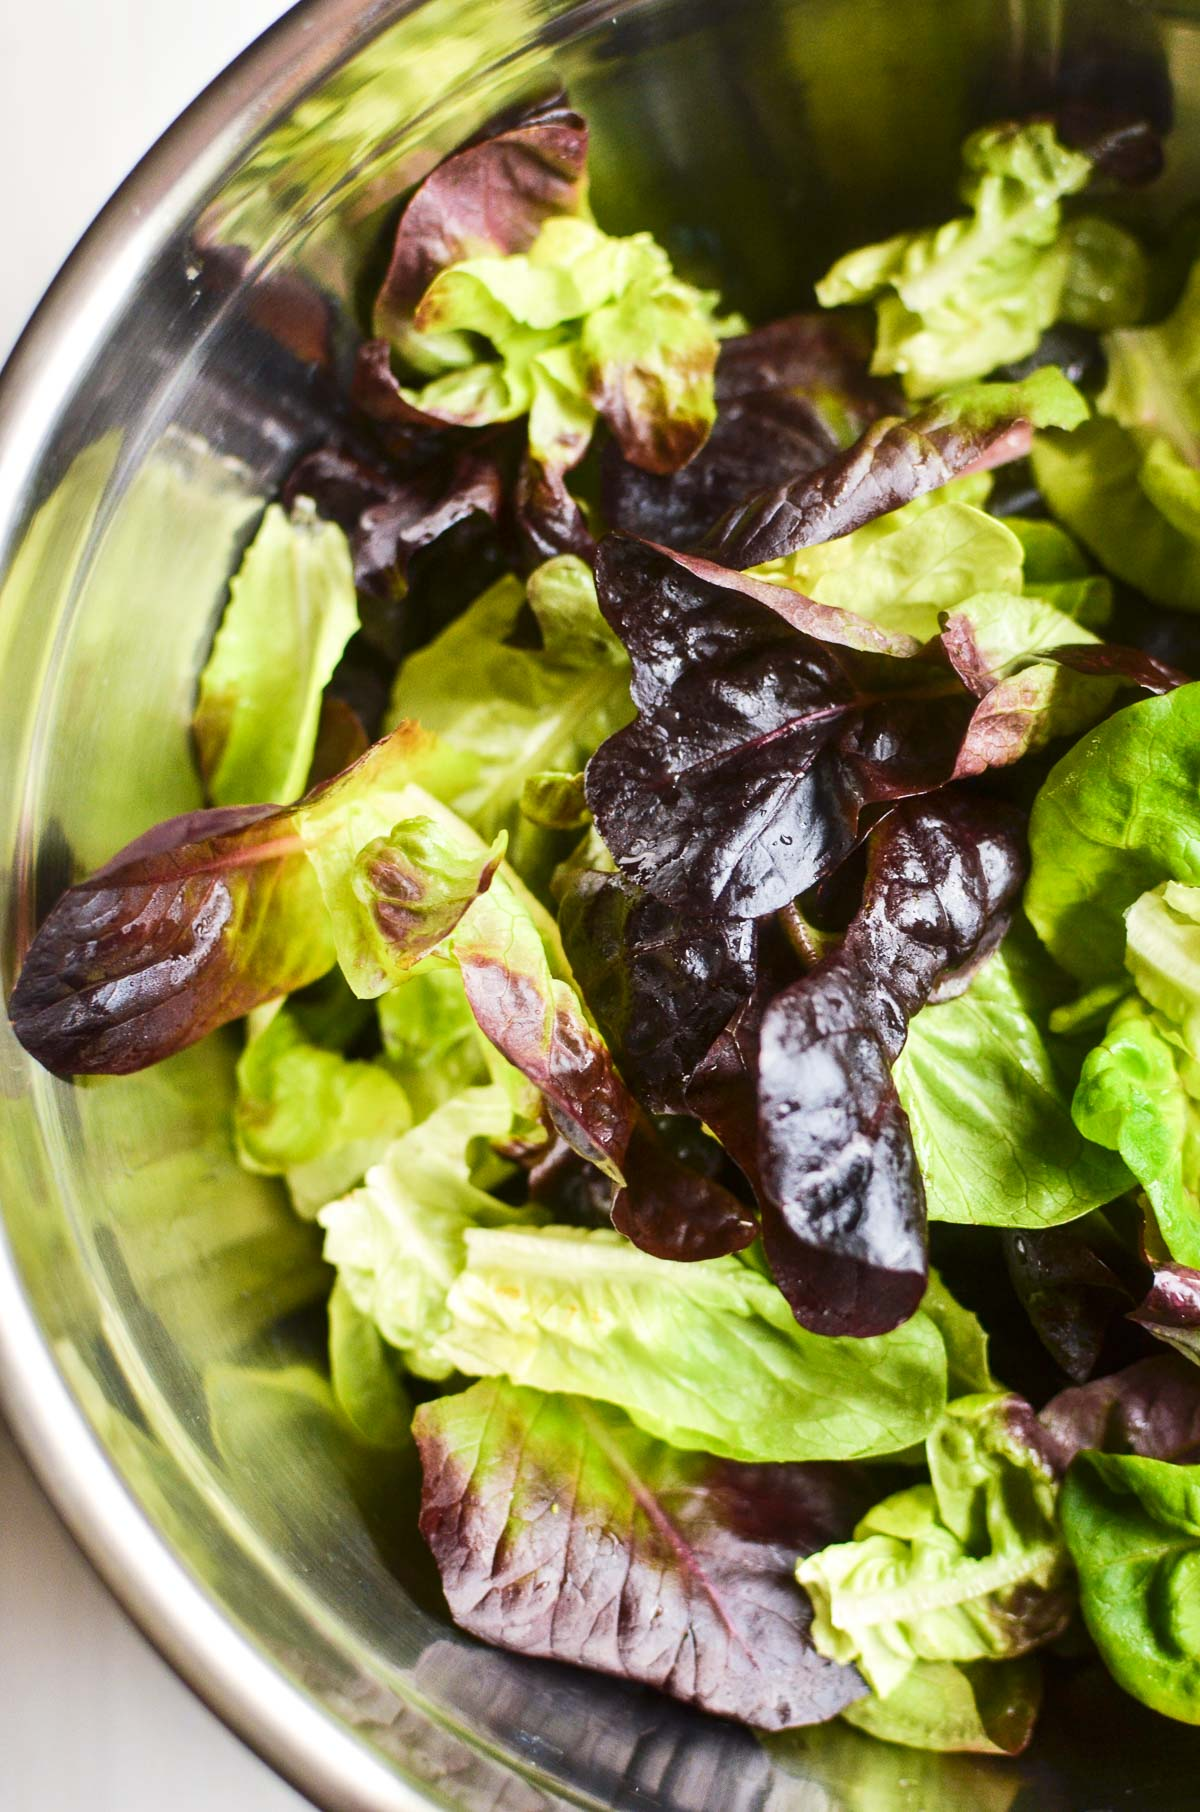 A stainless steel bowl full of fresh salad greens.